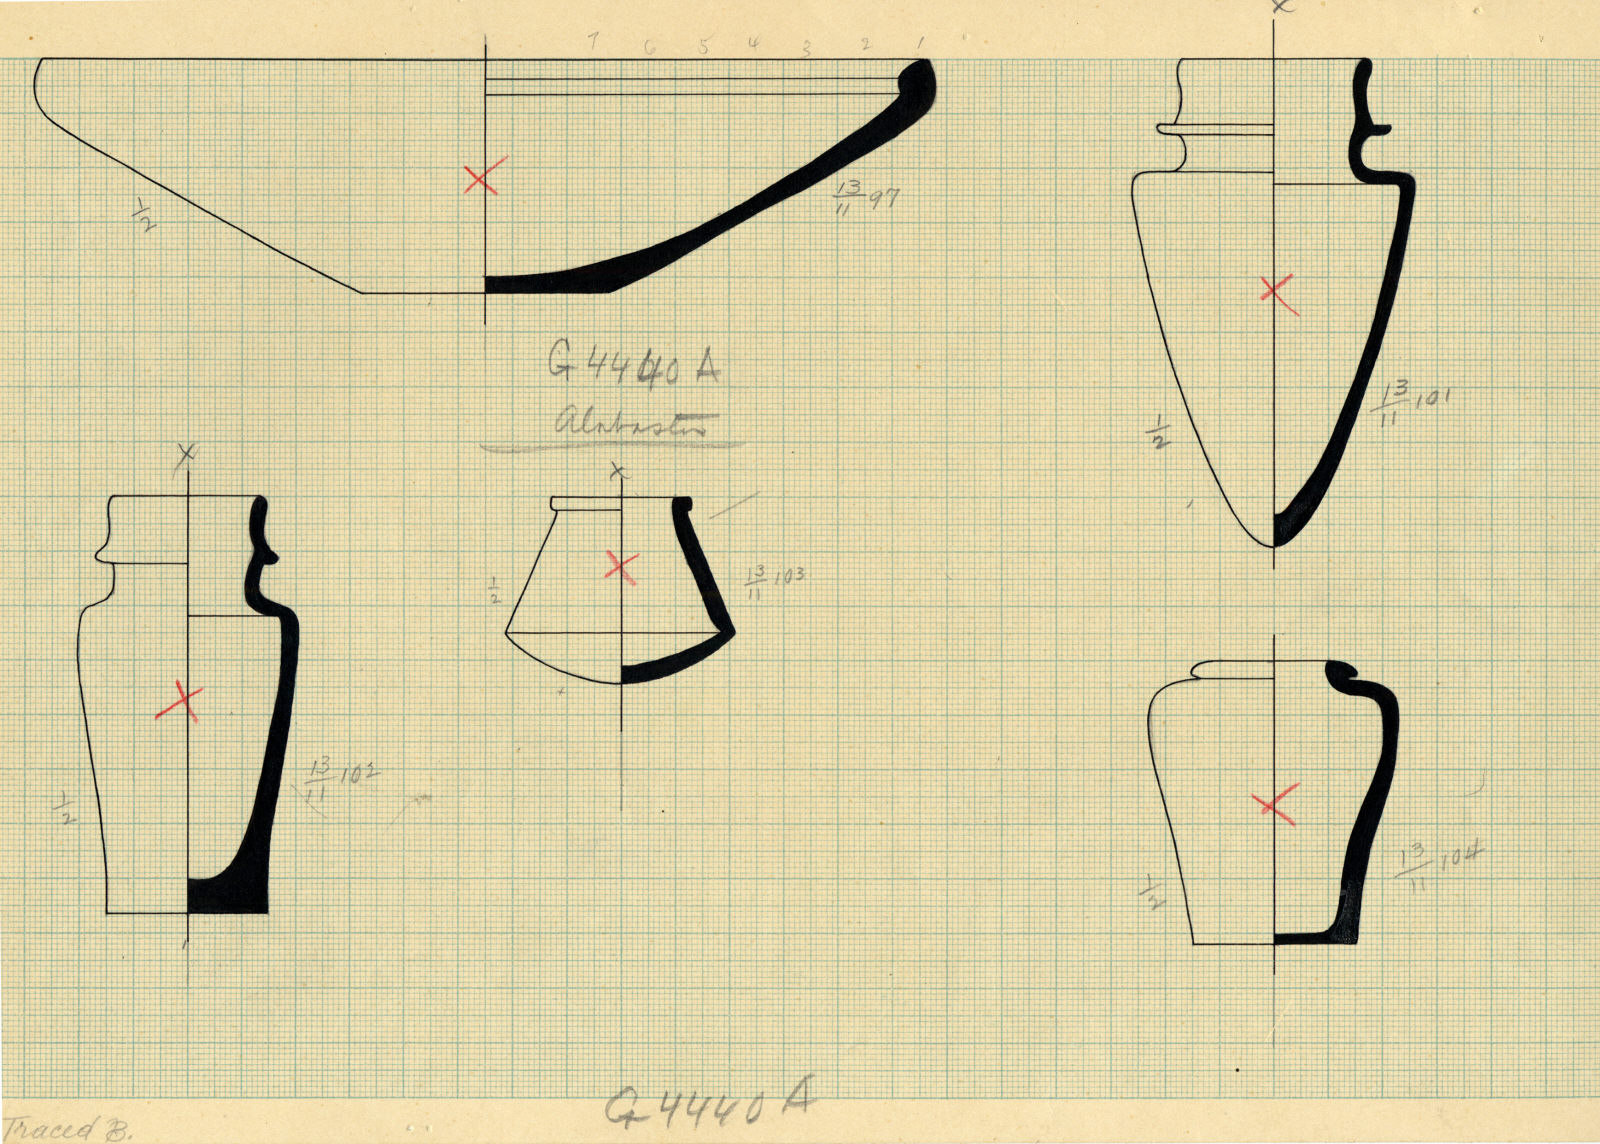 Drawings: G 4440 A: objects, alabaster and pottery